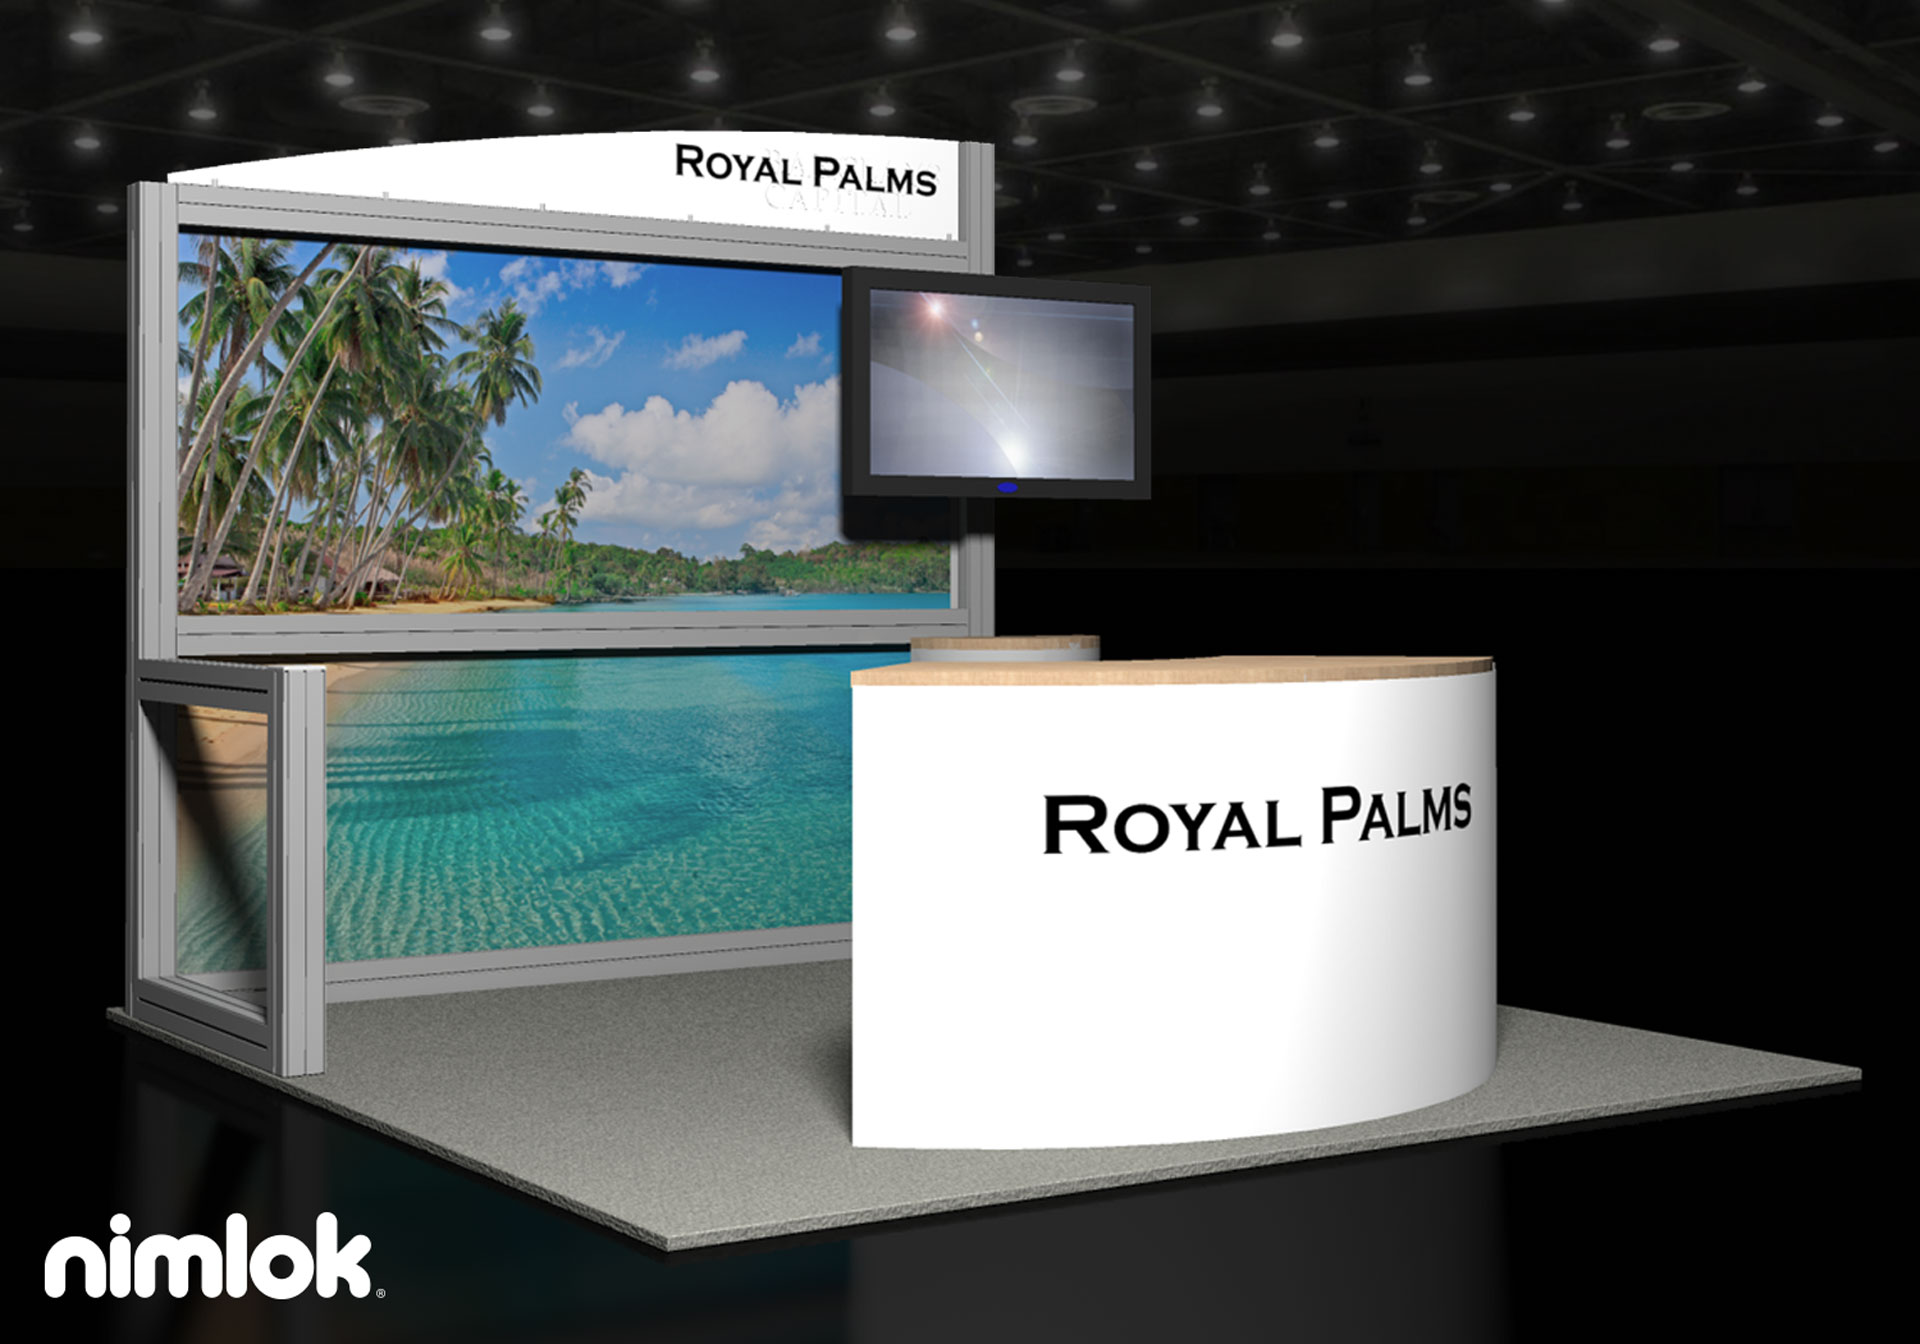 Barclays Capital/ Royal Palms - 10x10 - trade show exhibit